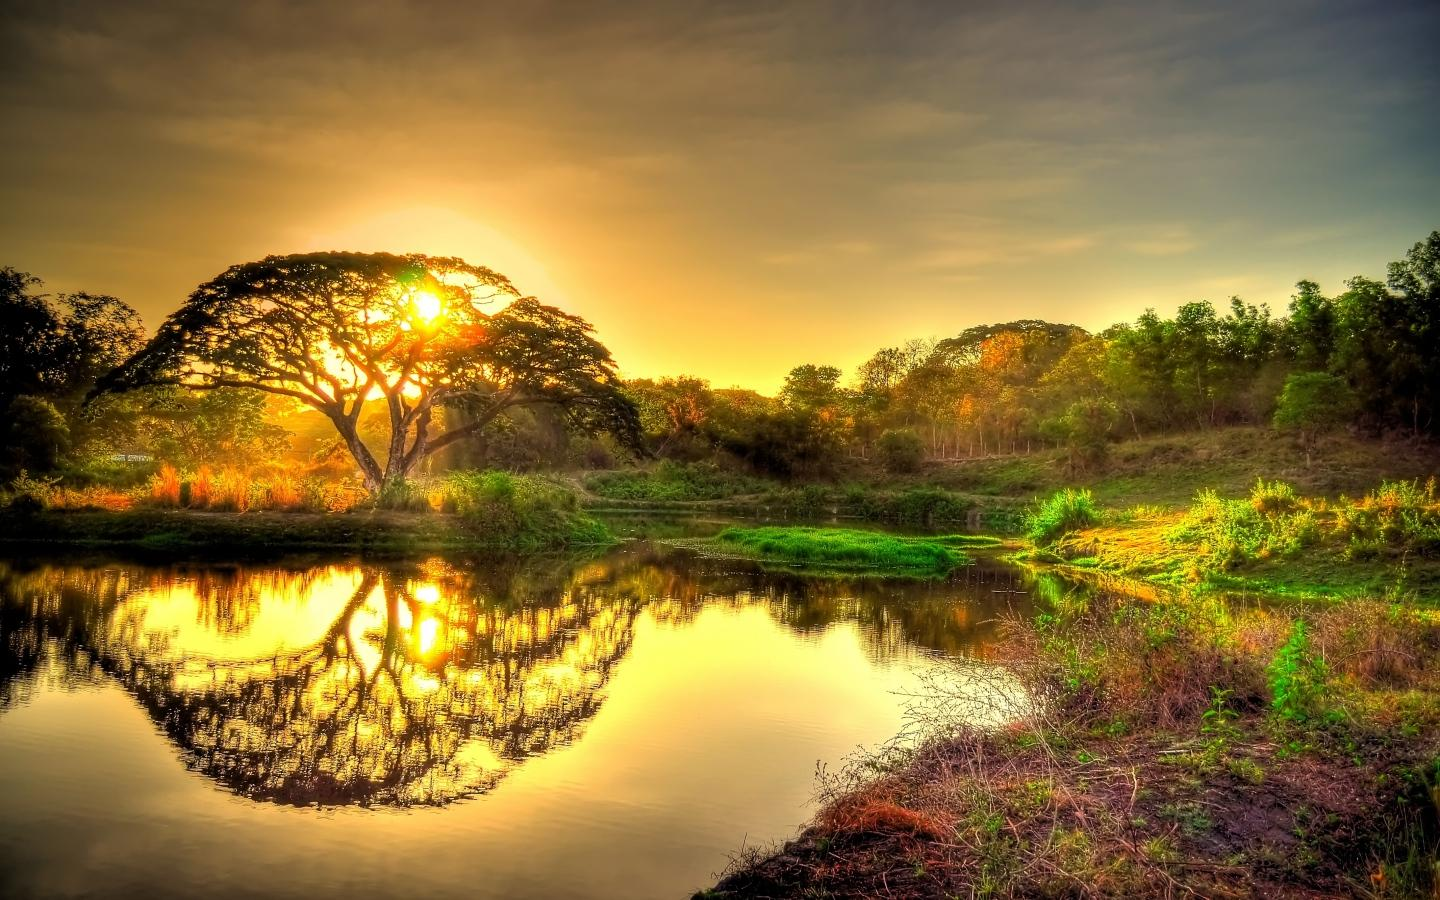 Nature Backgrounds Hd Posted By John Anderson